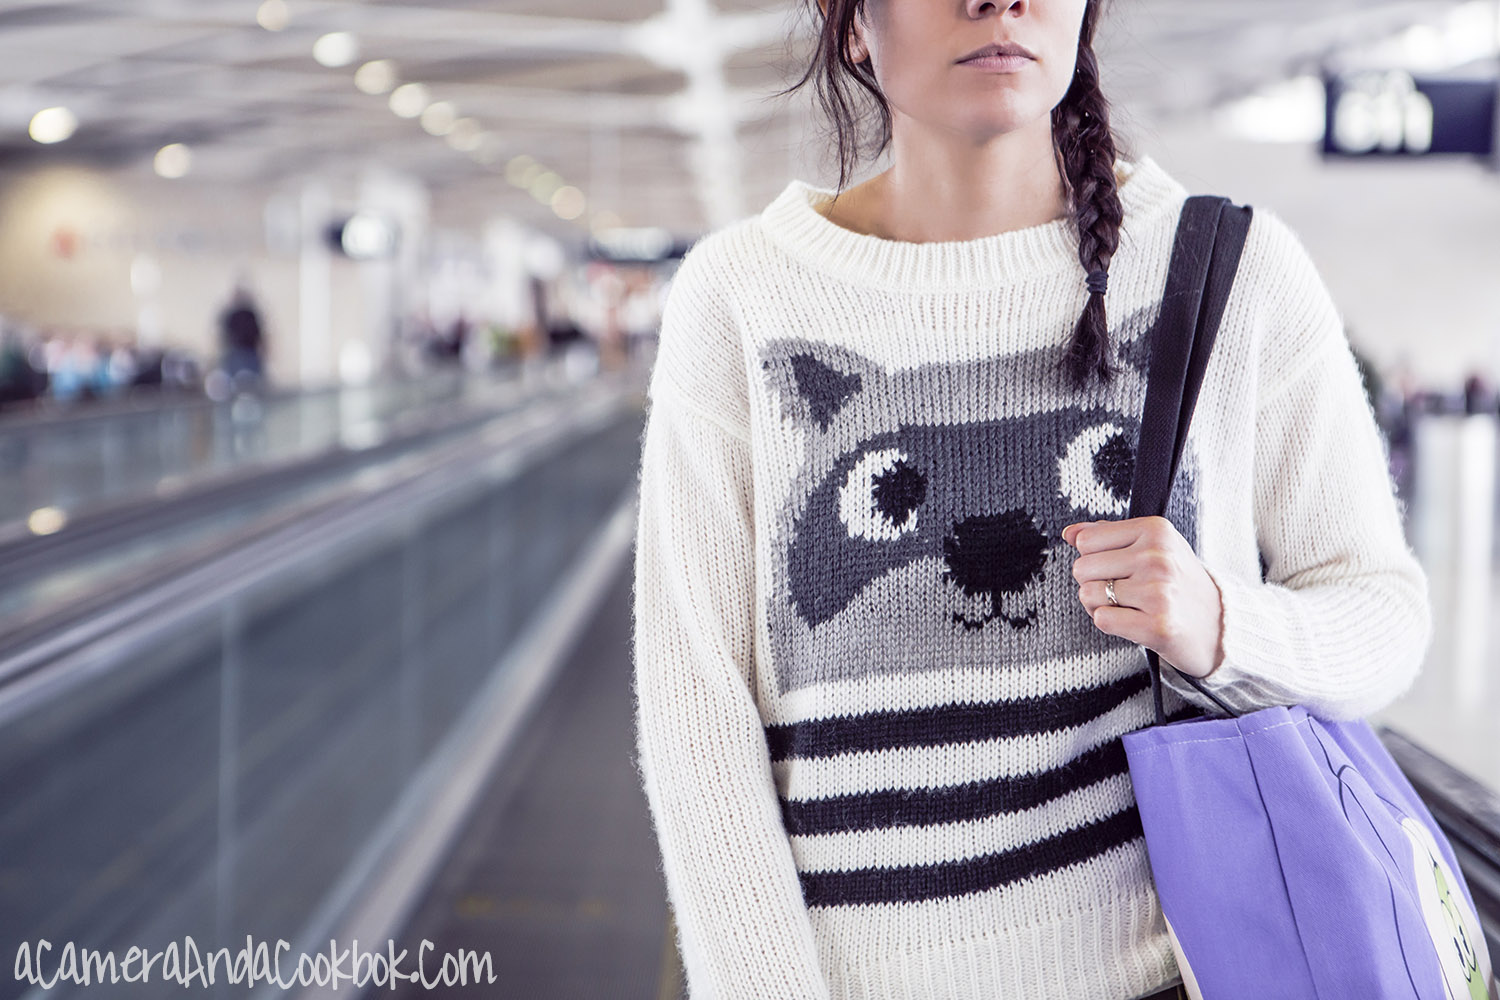 How To Overcome The Fear Of Traveling Alone